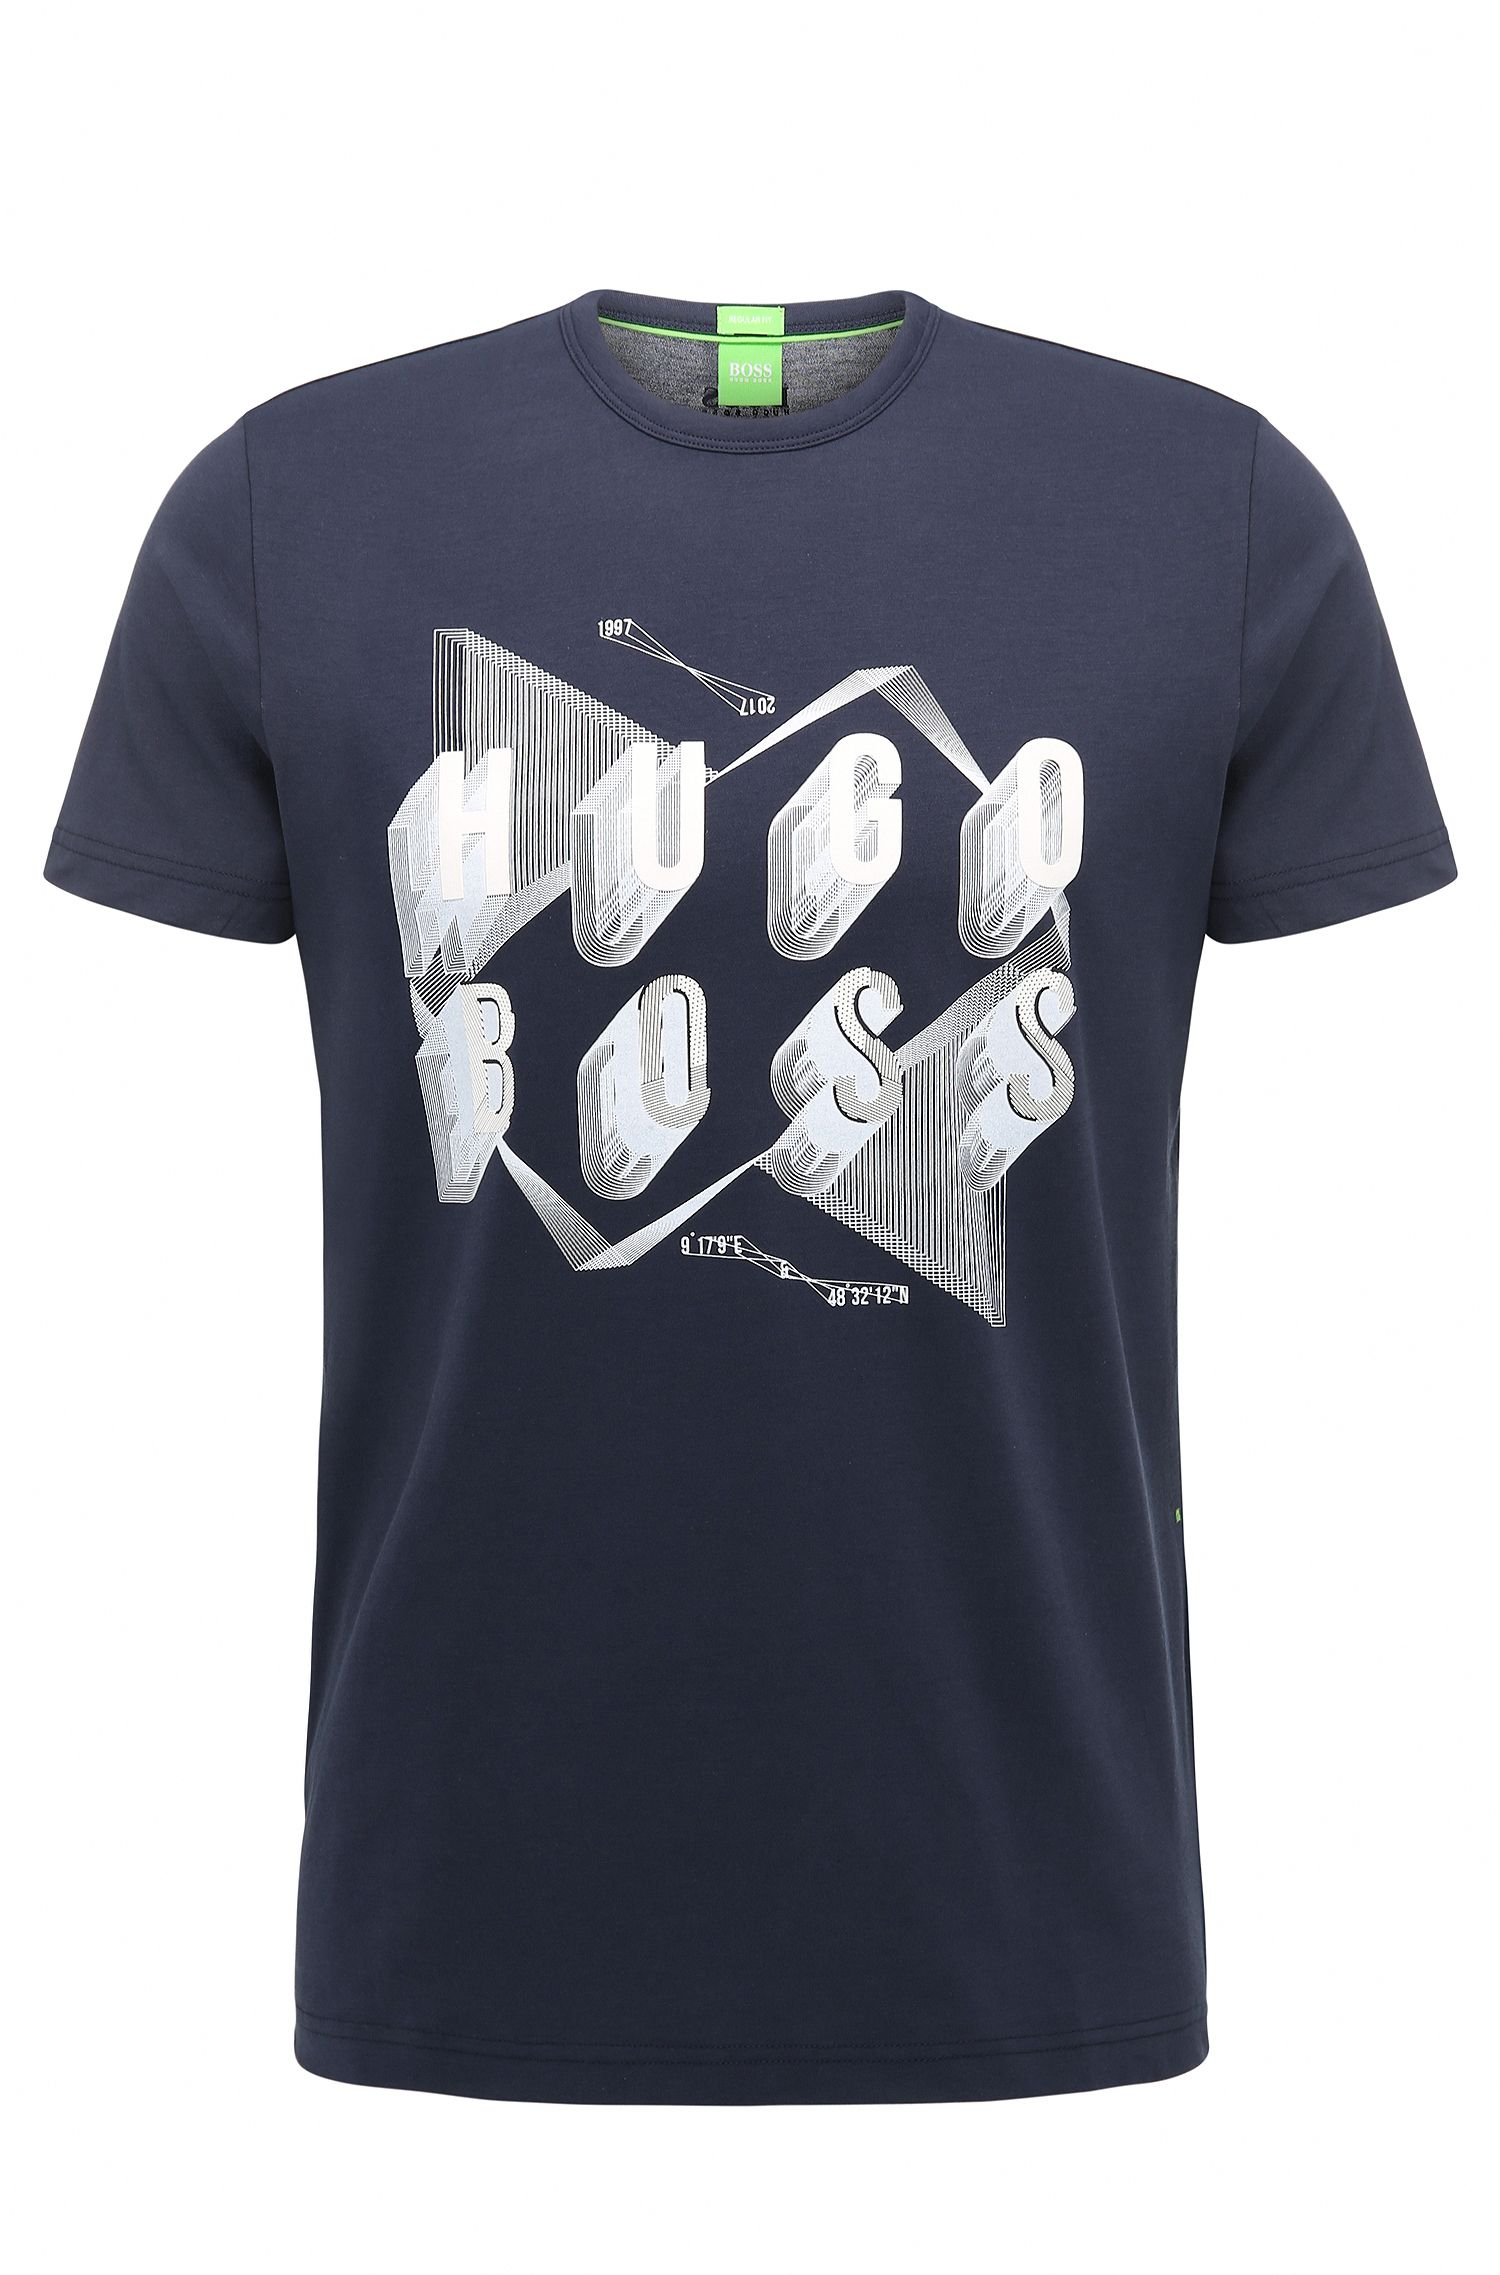 T-shirt Regular Fit en coton orné d'un motif arty